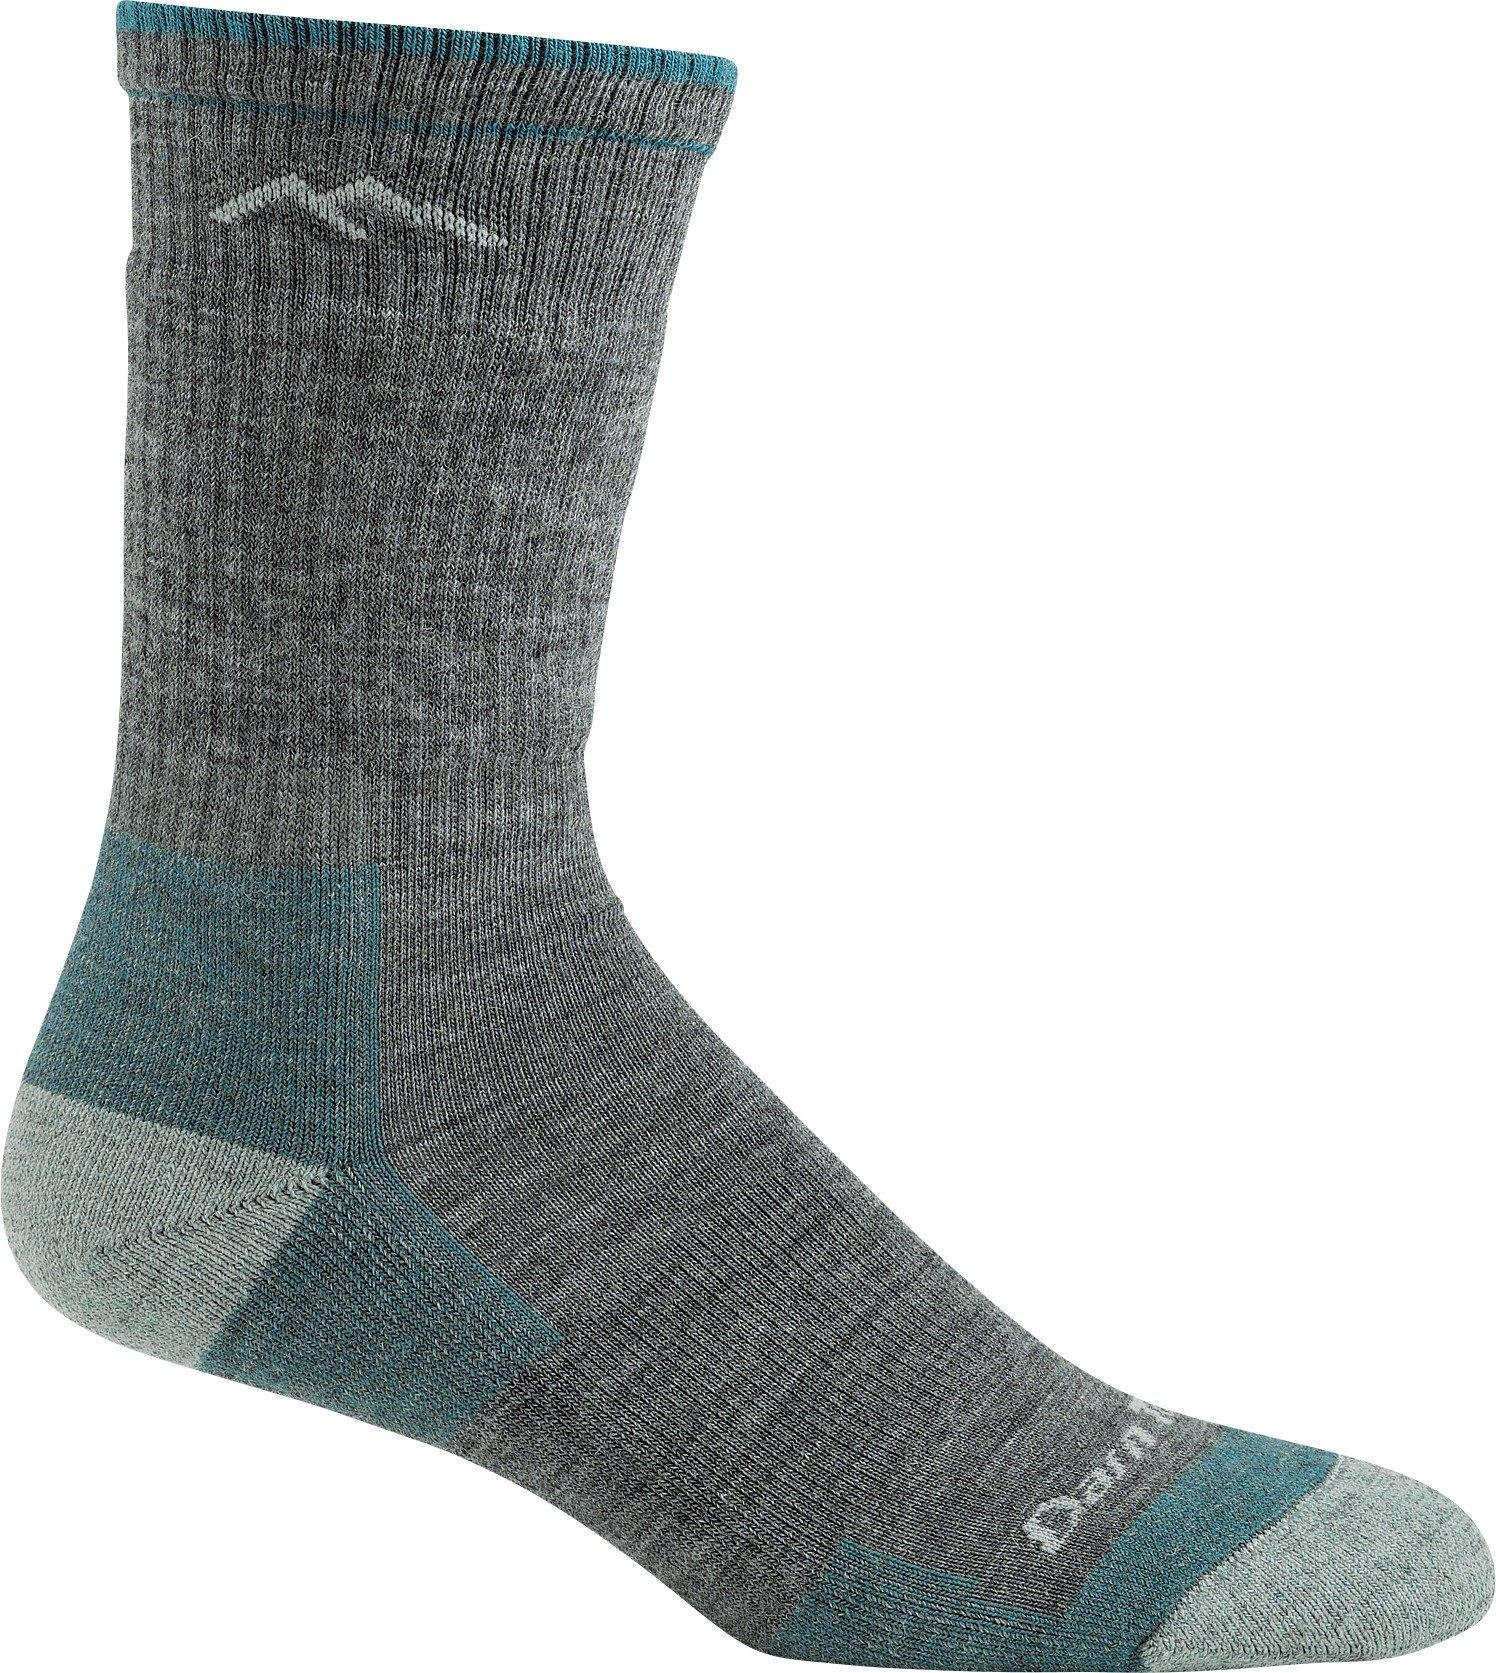 Darn Tough Vermont (1907) Women's Boot Cushion Socks, Slate, Medium by Darn Tough